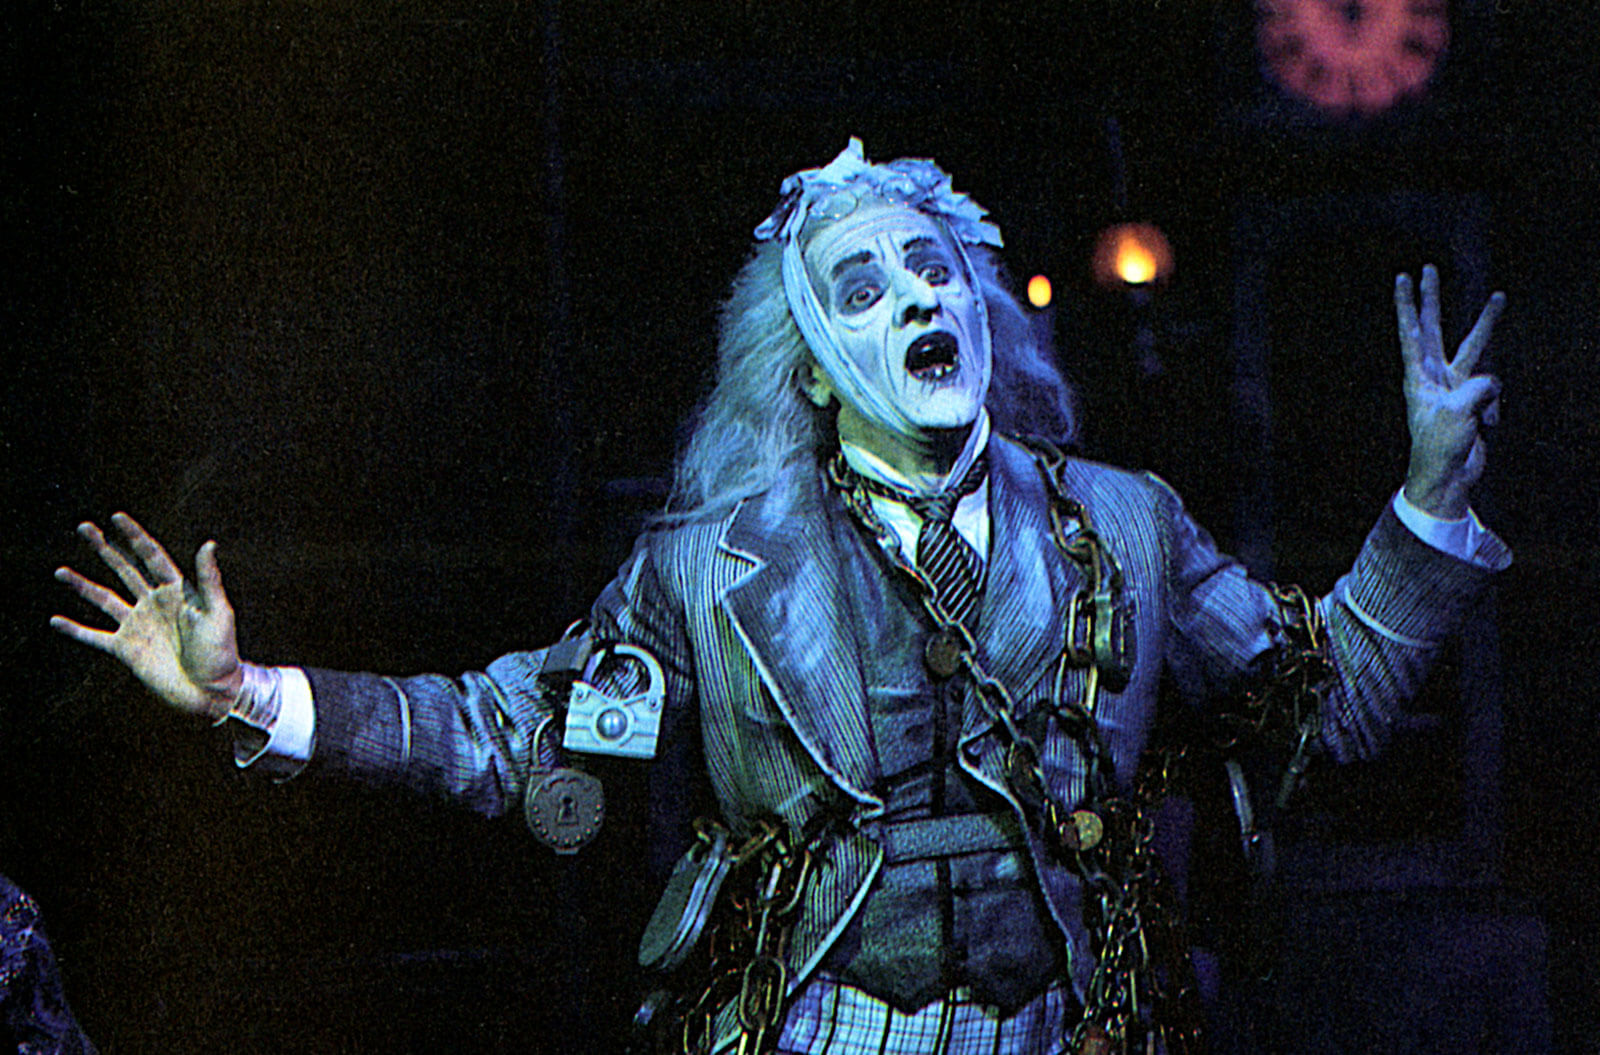 The Ghost of Jacob Marley (Jeff Keller) appears and is wrapped in chains with candlelight in the background.